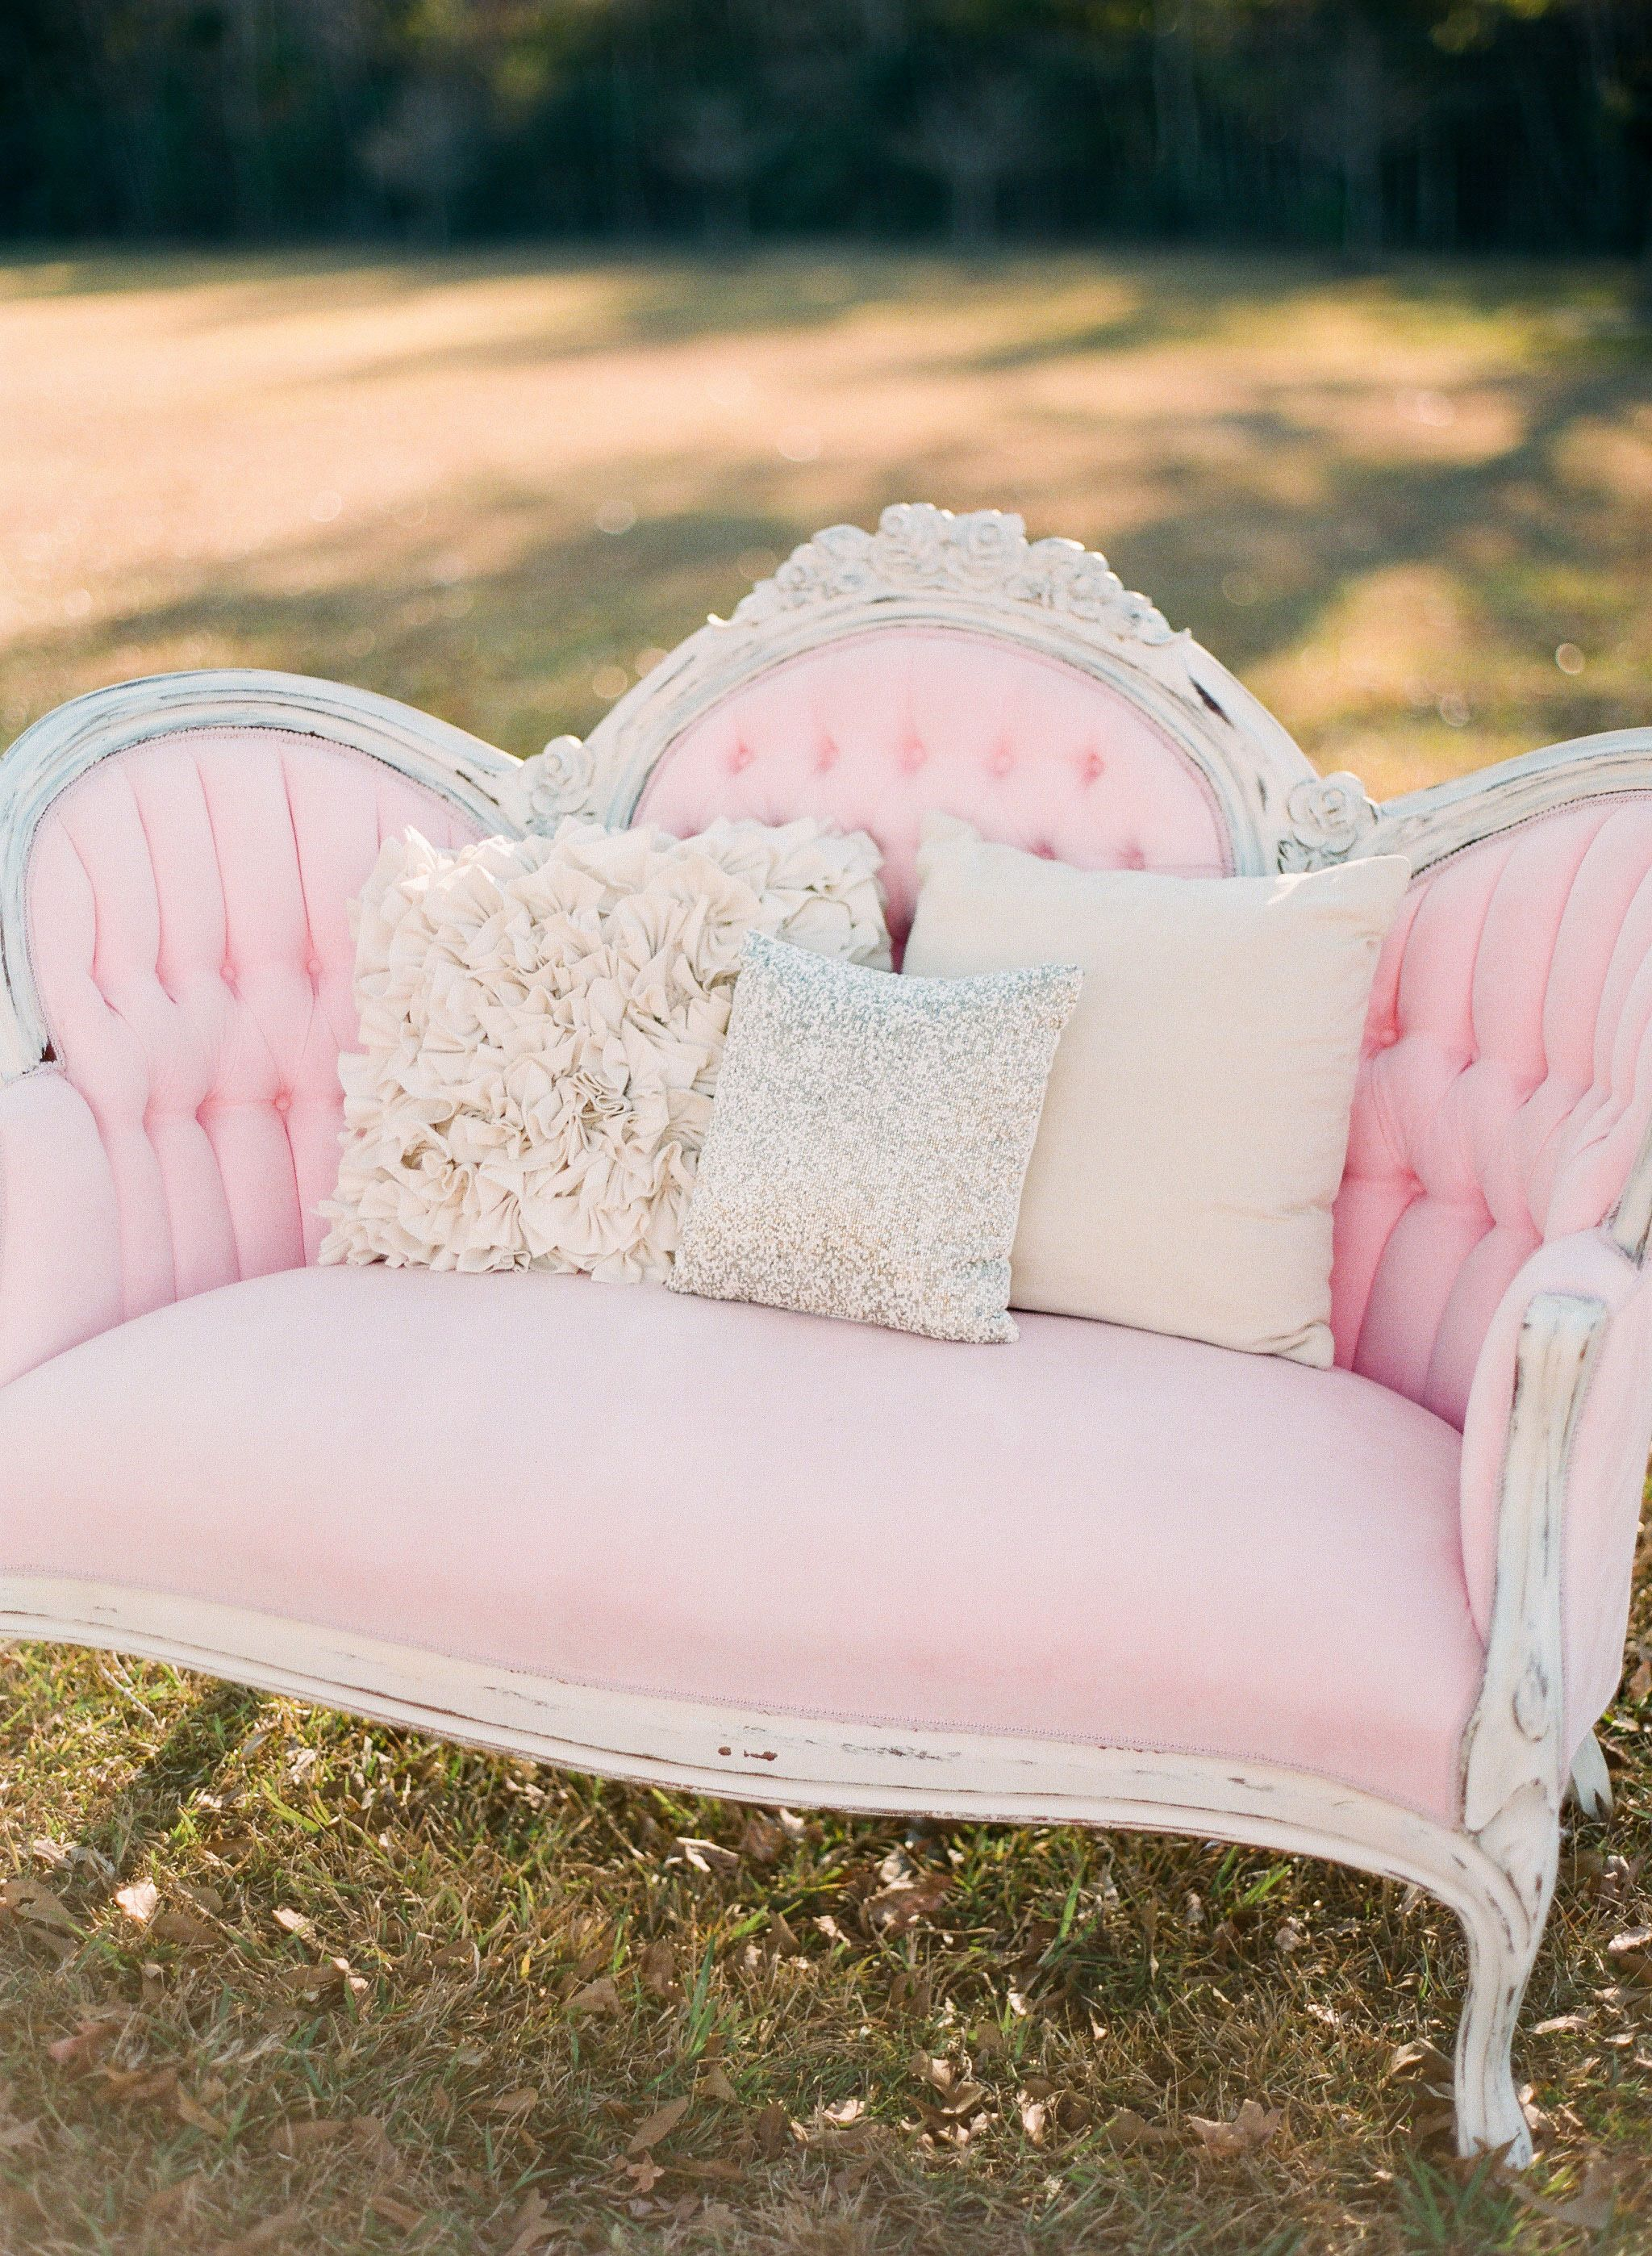 Couch Shabby Chic Pink And Gold Wedding Inspiration For The Home Shabby Chic